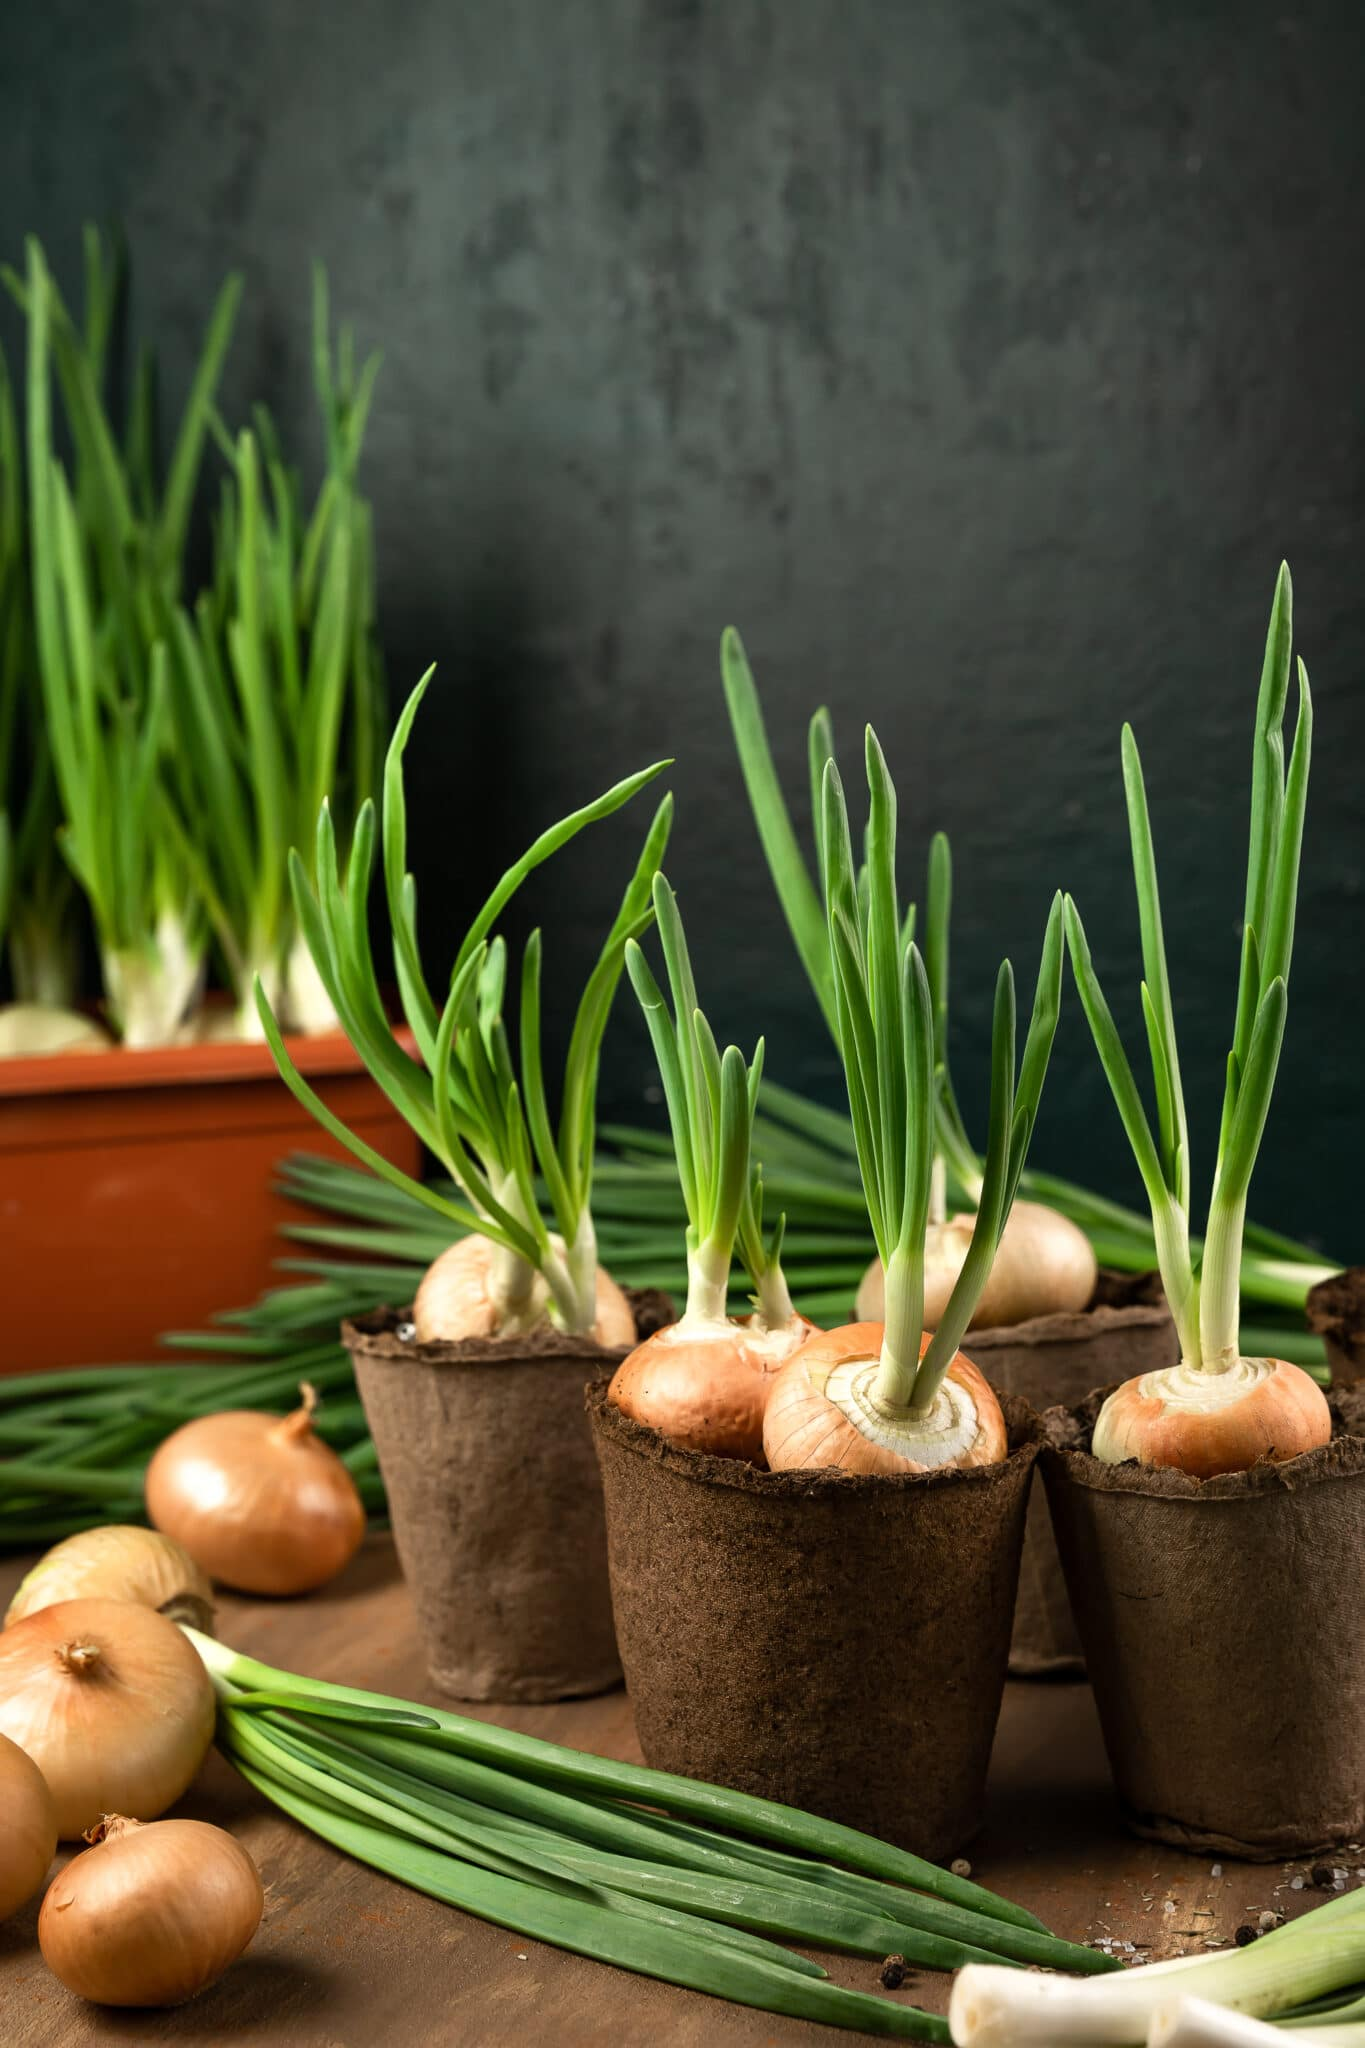 green onions grown in paper containers.